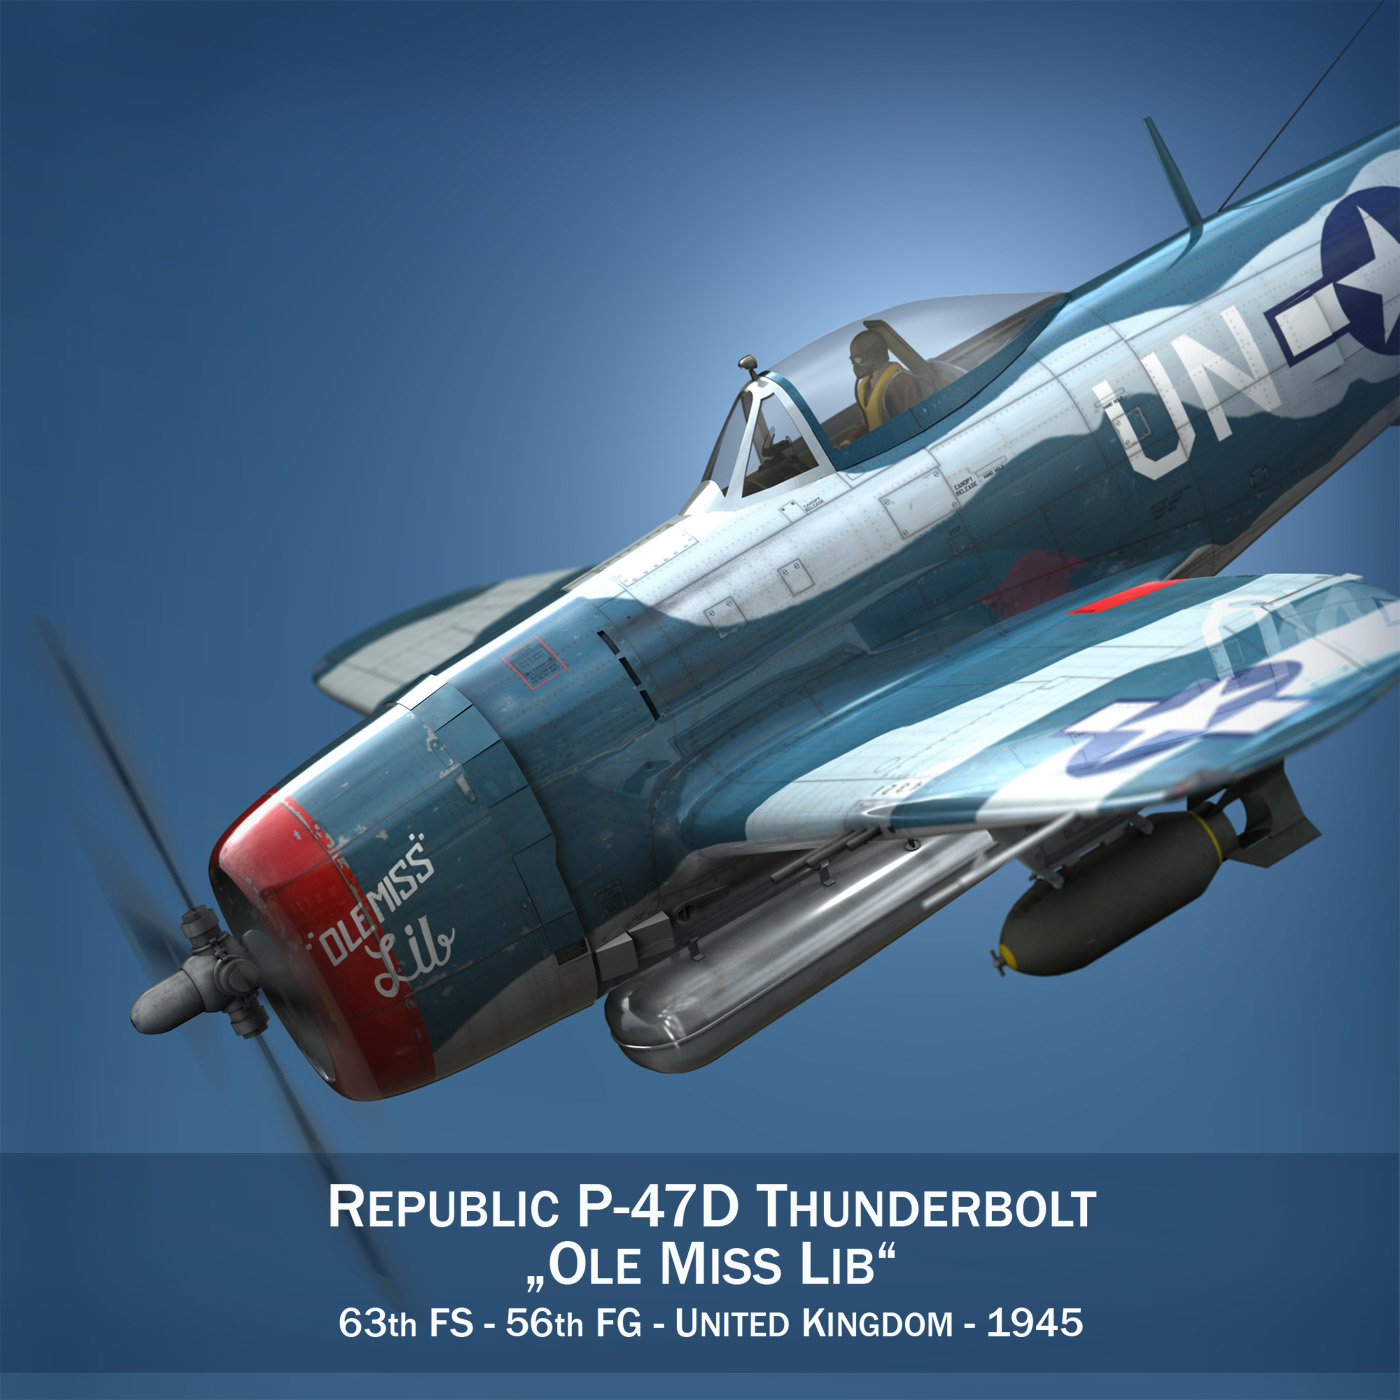 republic p-47 thunderbolt – ole miss lib 3d model fbx c4d lwo obj 274273